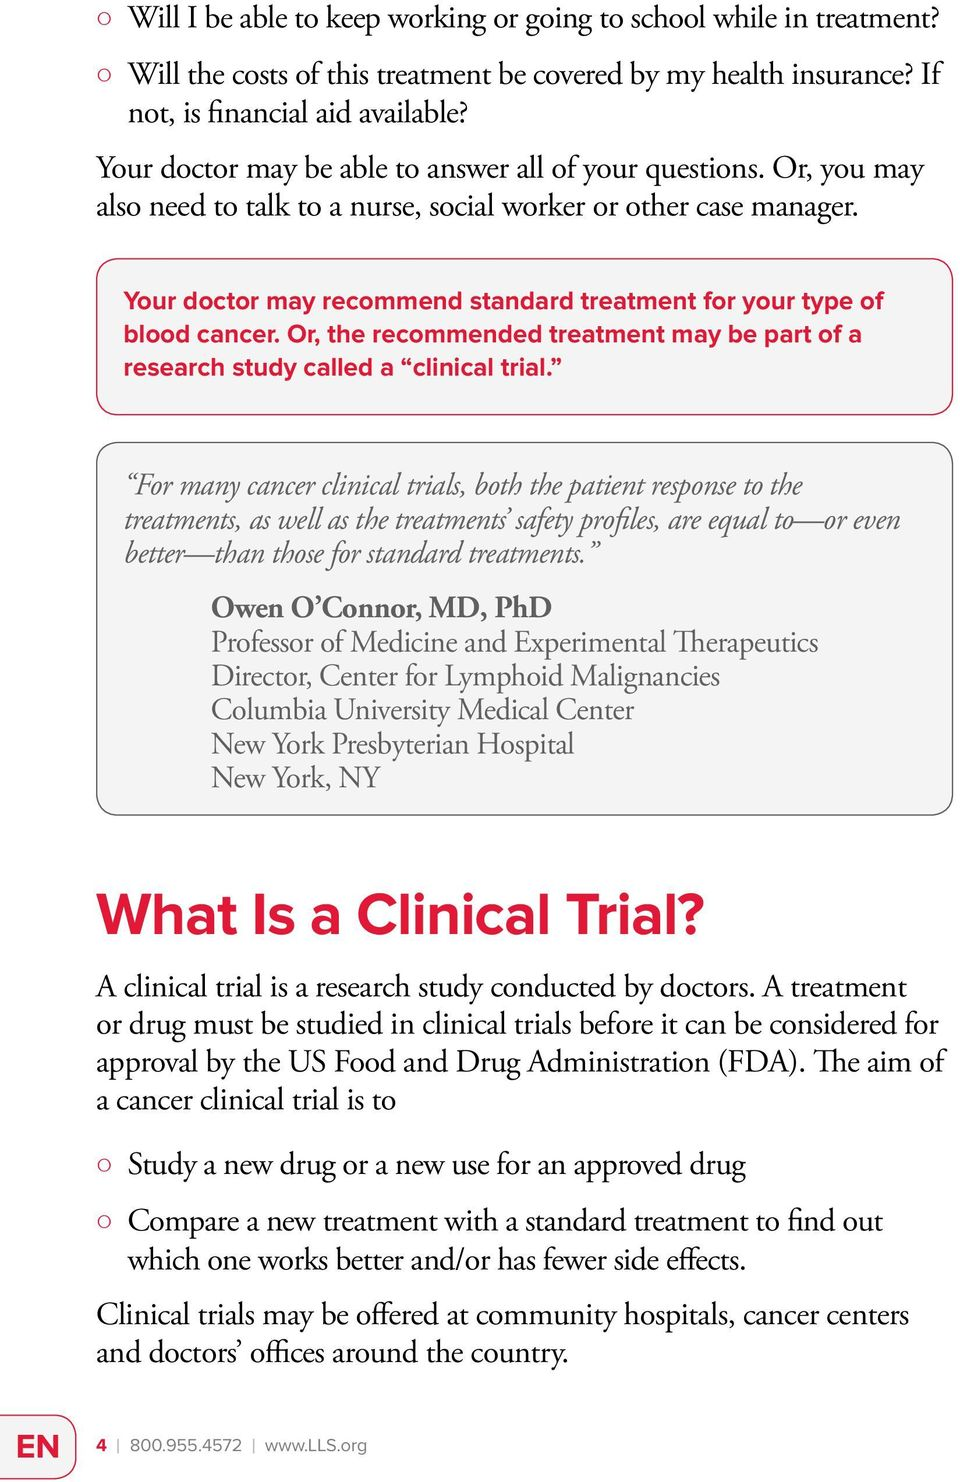 Your doctor may recommend standard treatment for your type of blood cancer. Or, the recommended treatment may be part of a research study called a clinical trial.